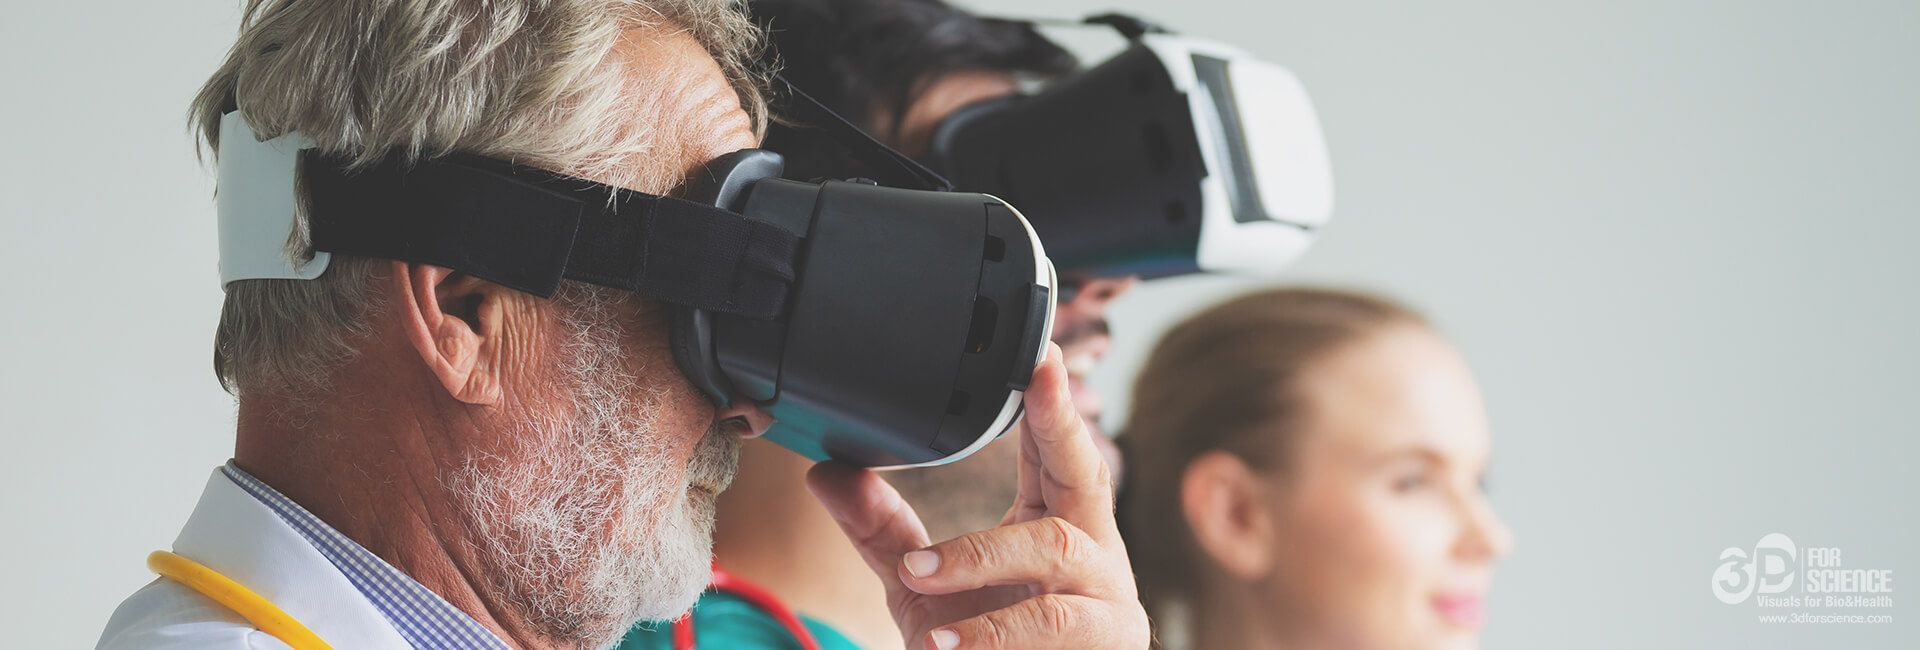 old man using a virtual reality device